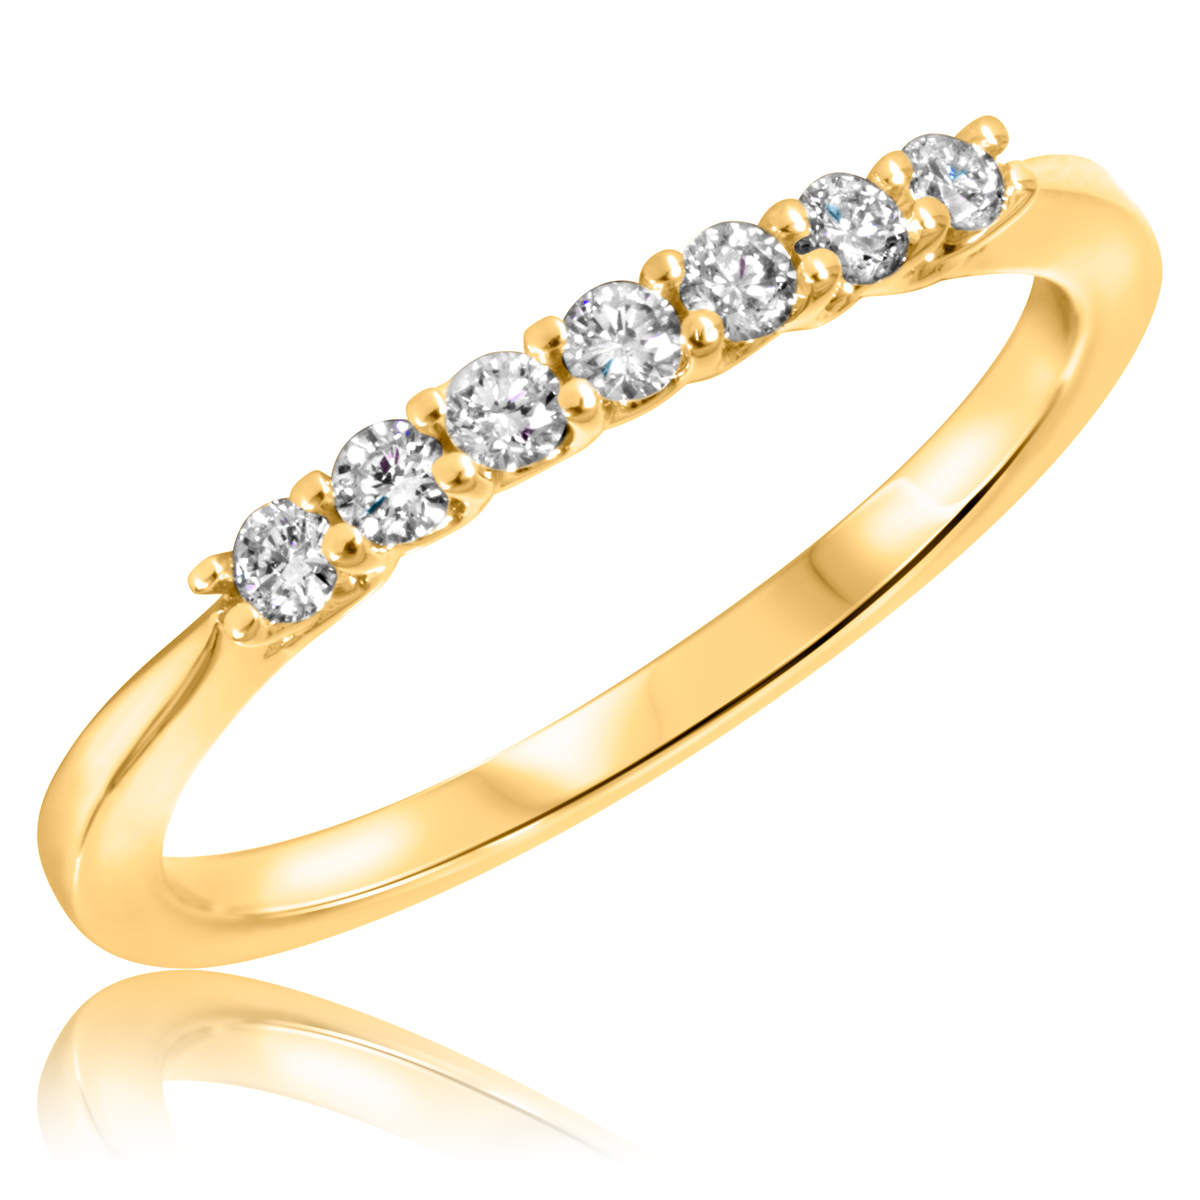 1/5 Carat T.W. Round Cut Diamond Ladies Wedding Band 10K Yellow Gold- Size 8